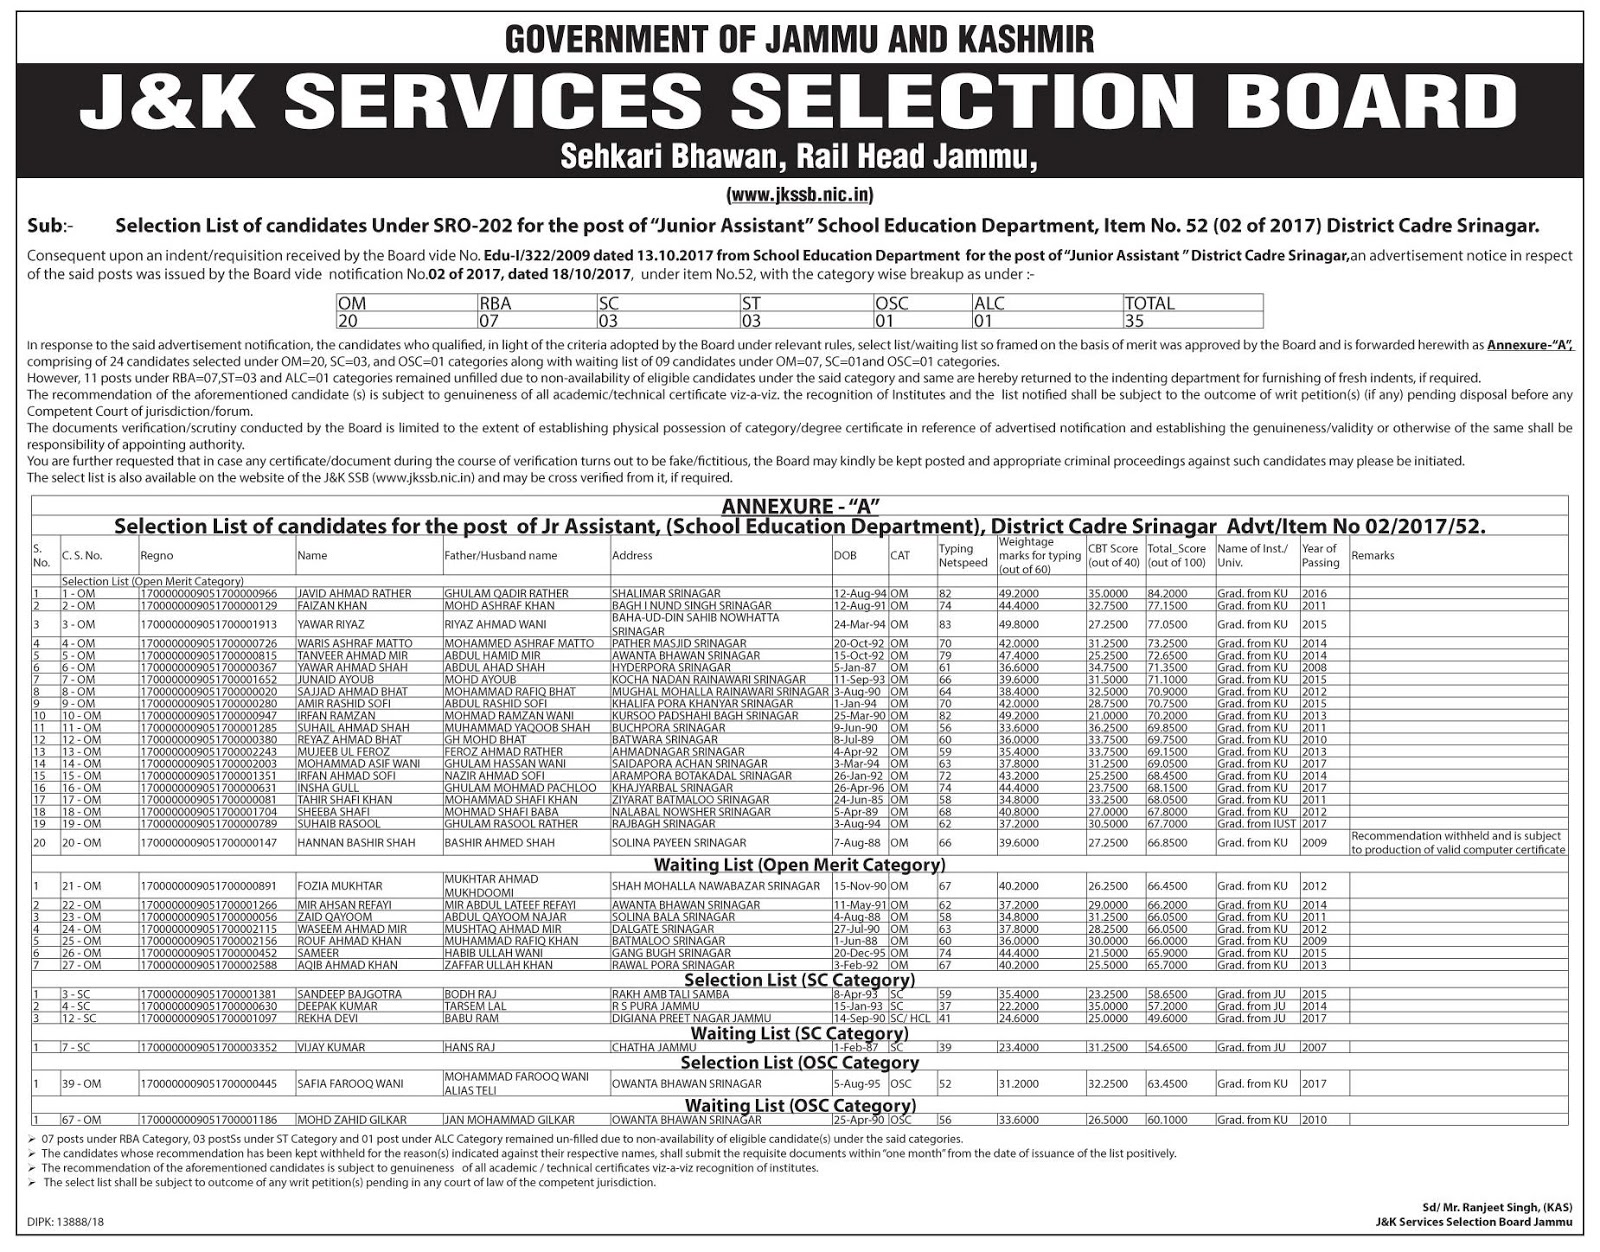 JKSSB Selection List for Junior Assistant posts in School Education Department (Srinagar)